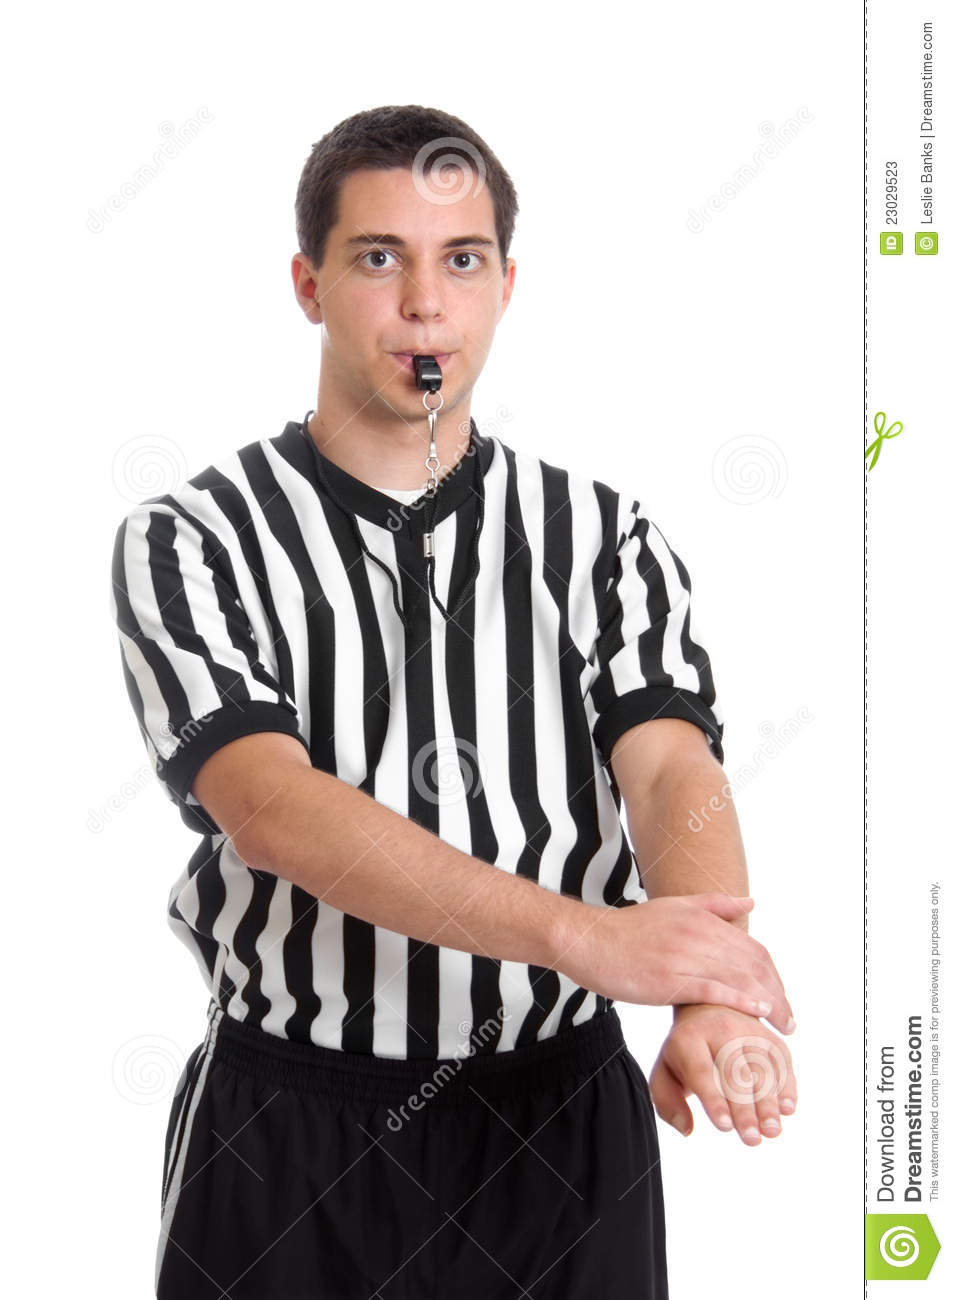 Referee giving defensive foul sign